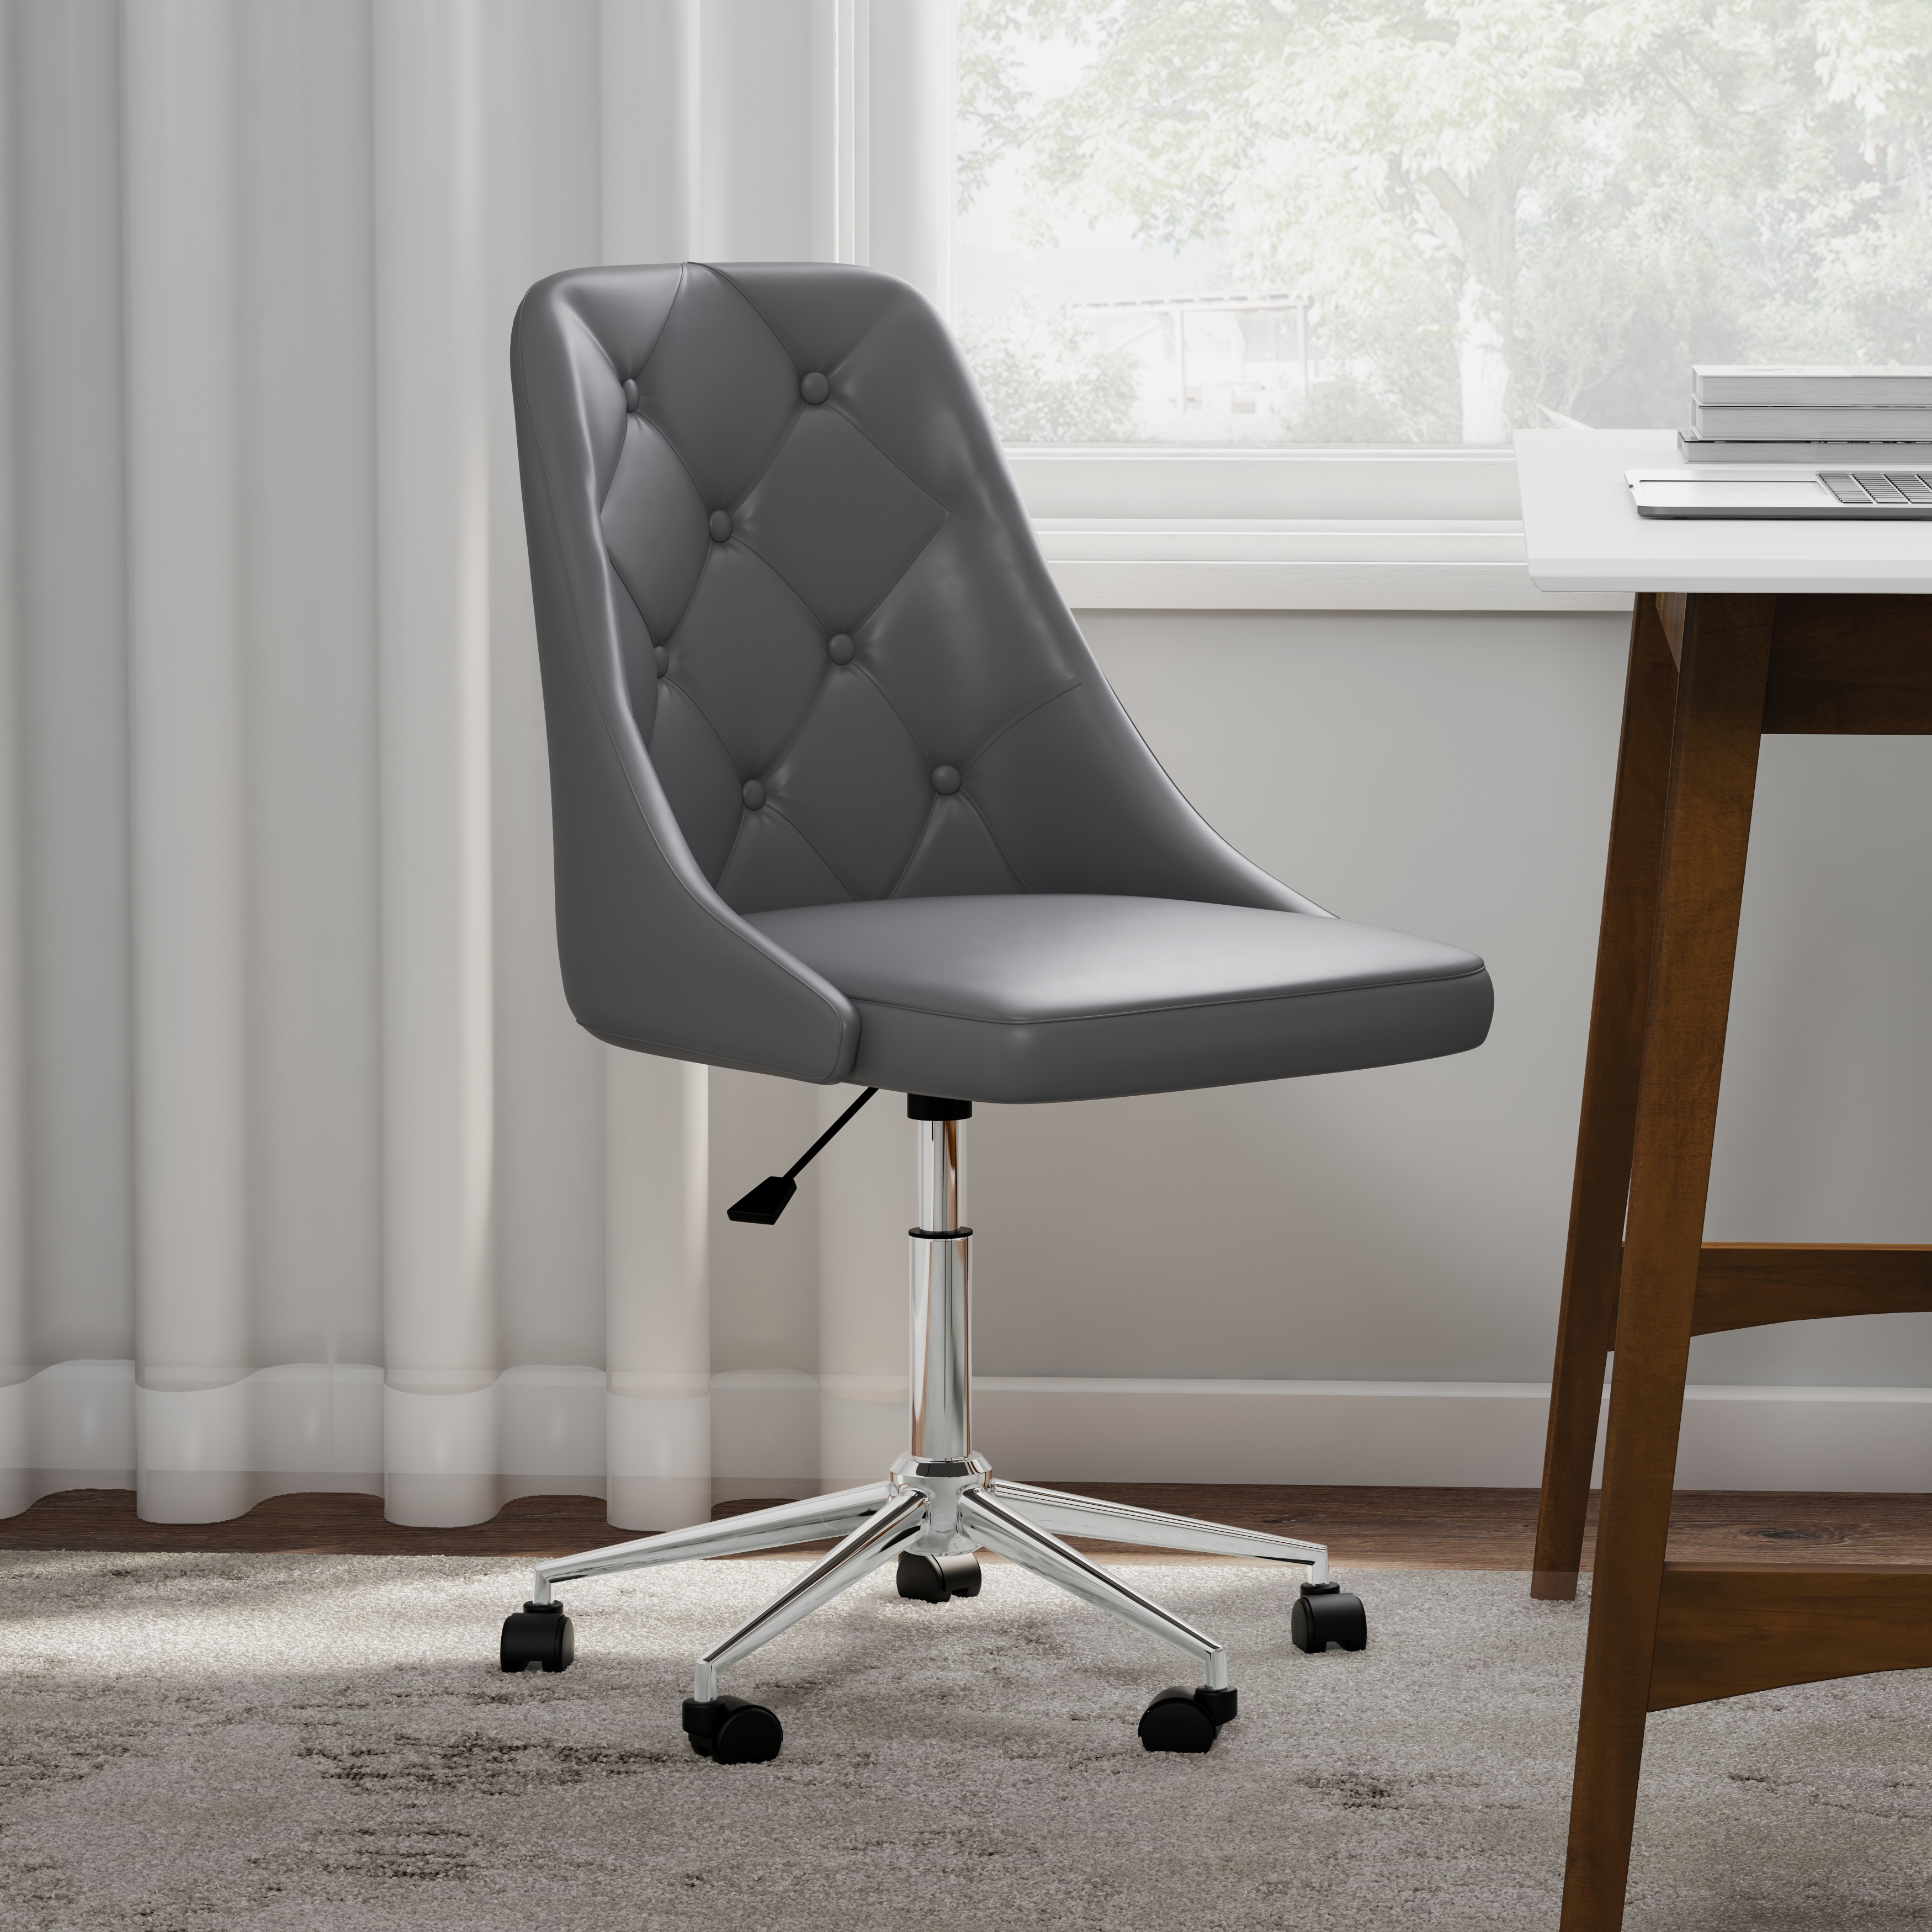 Carson Carrington Ockelbo On Tufted Faux Leather Office Chair Free Shipping Today 20543644